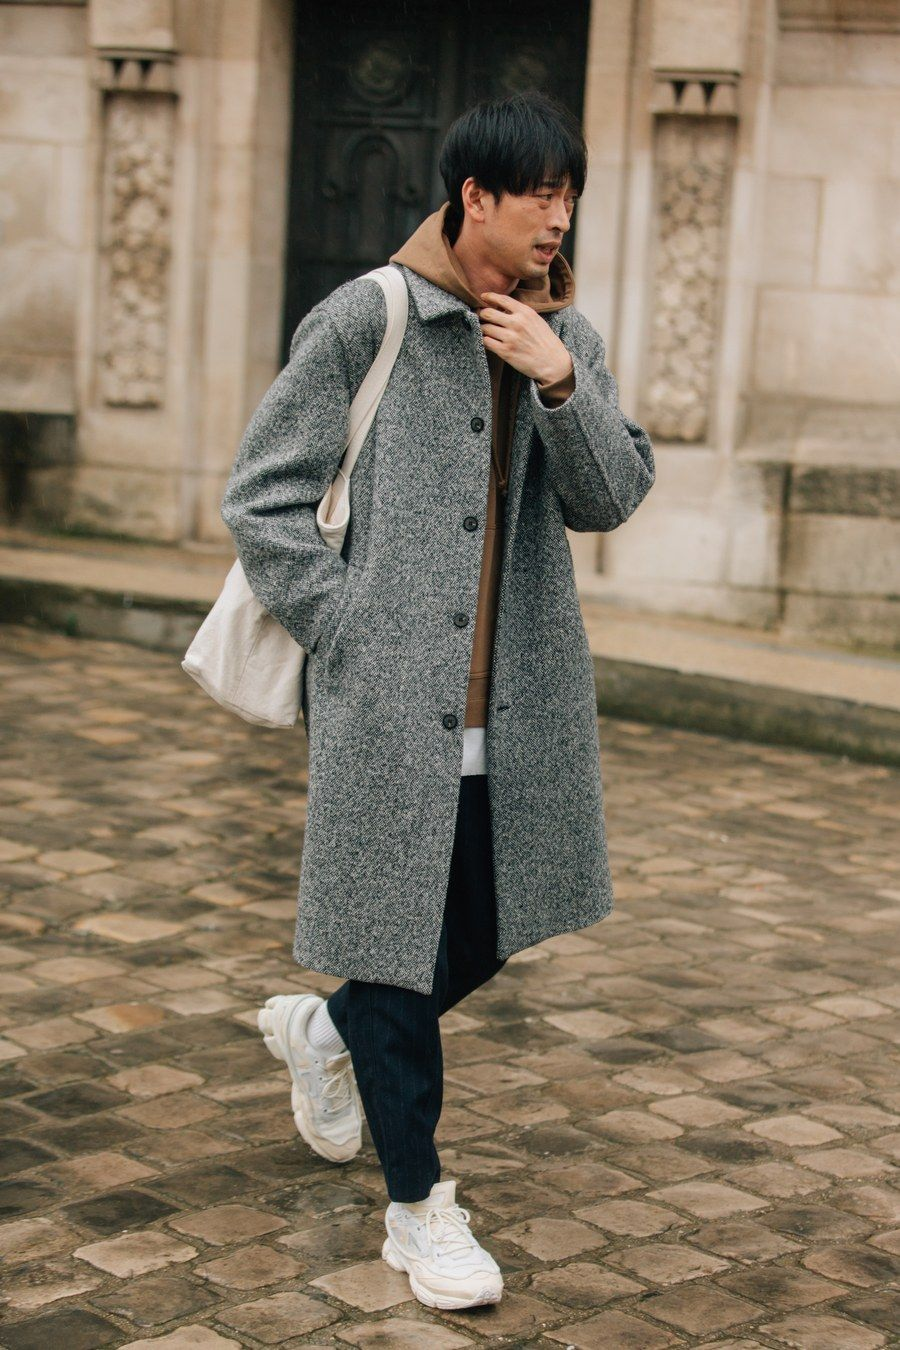 d398c87865f4 The Best Street Style from Paris Fashion Week - GQ